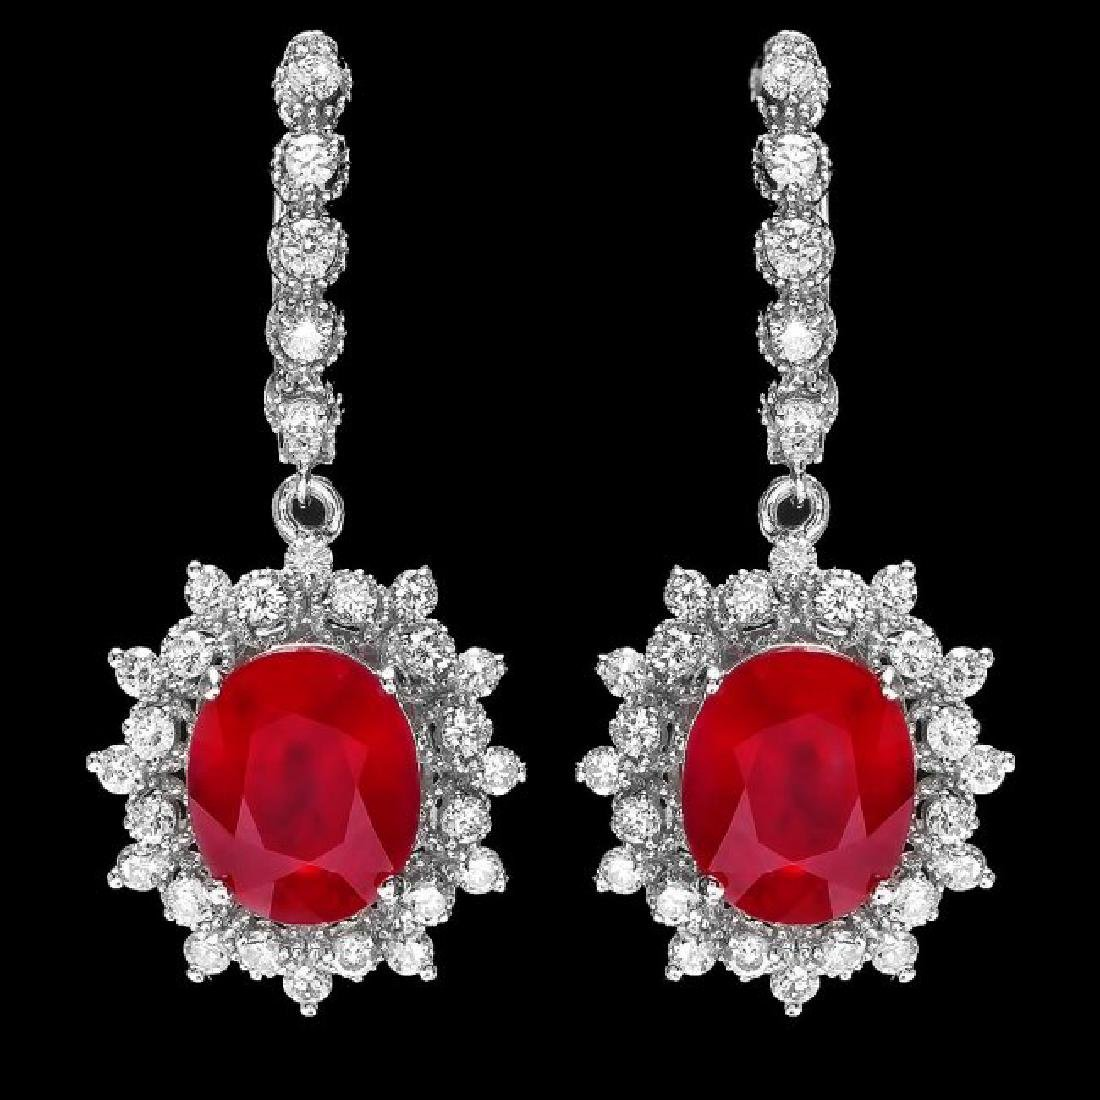 14k Gold 11.30ct Ruby 1.80ct Diamond Earrings